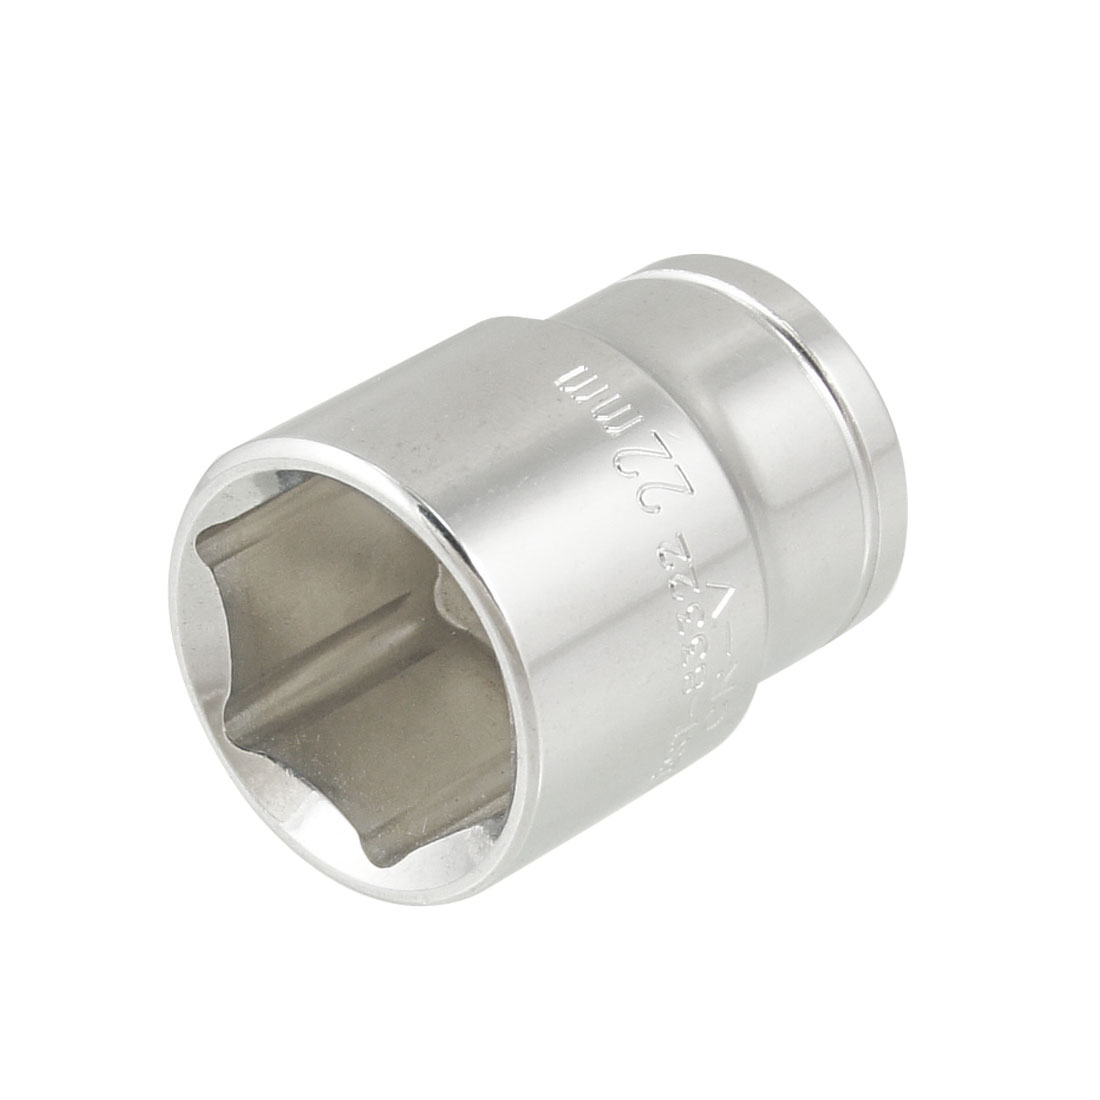 "22mm Hex 1/2"" Square Drive Chrome Coated Metal 6 Points Socket"